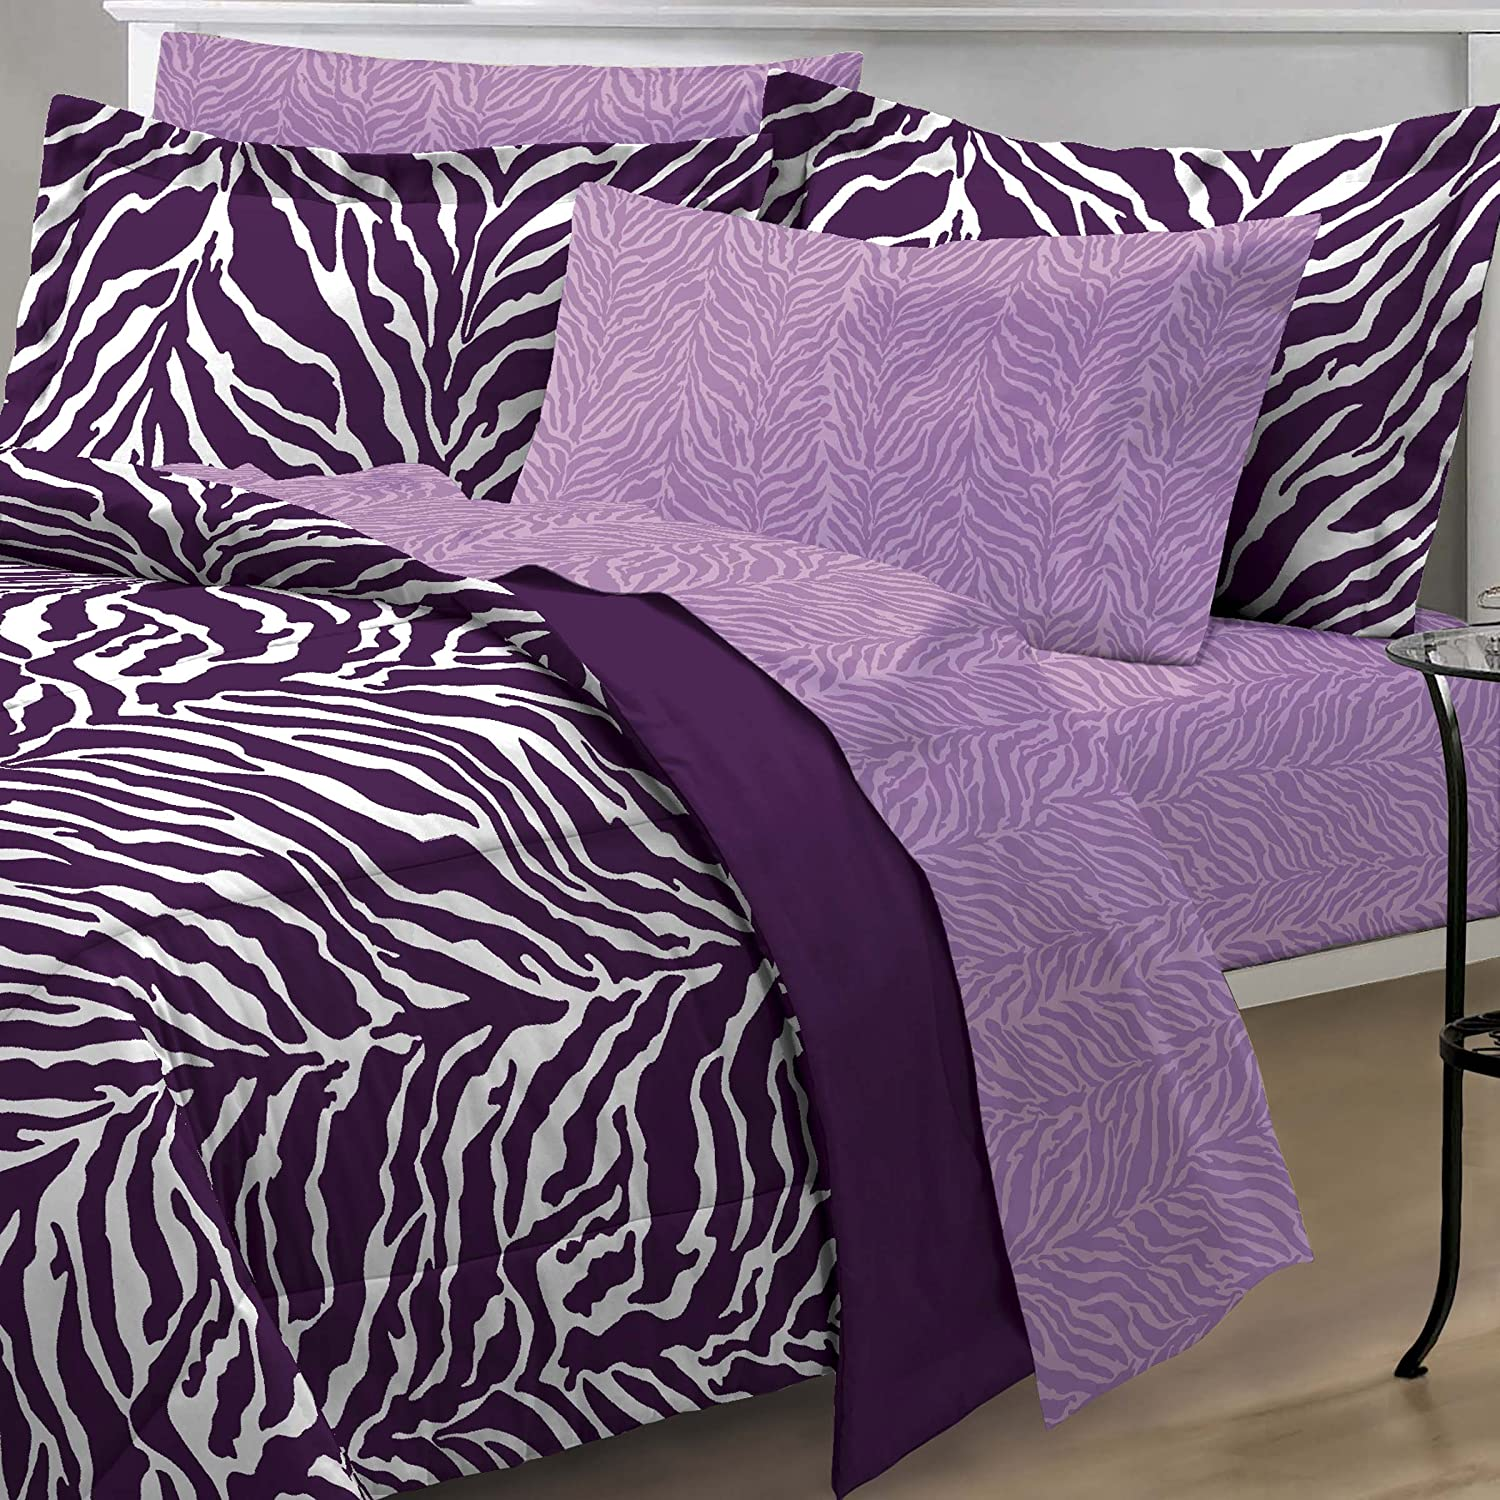 Cheap zebra print bedroom sets - Amazon Com My Room Zebra Purple Ultra Soft Microfiber Comforter Sheet Set Multi Colored Twin Twin X Large Home Kitchen